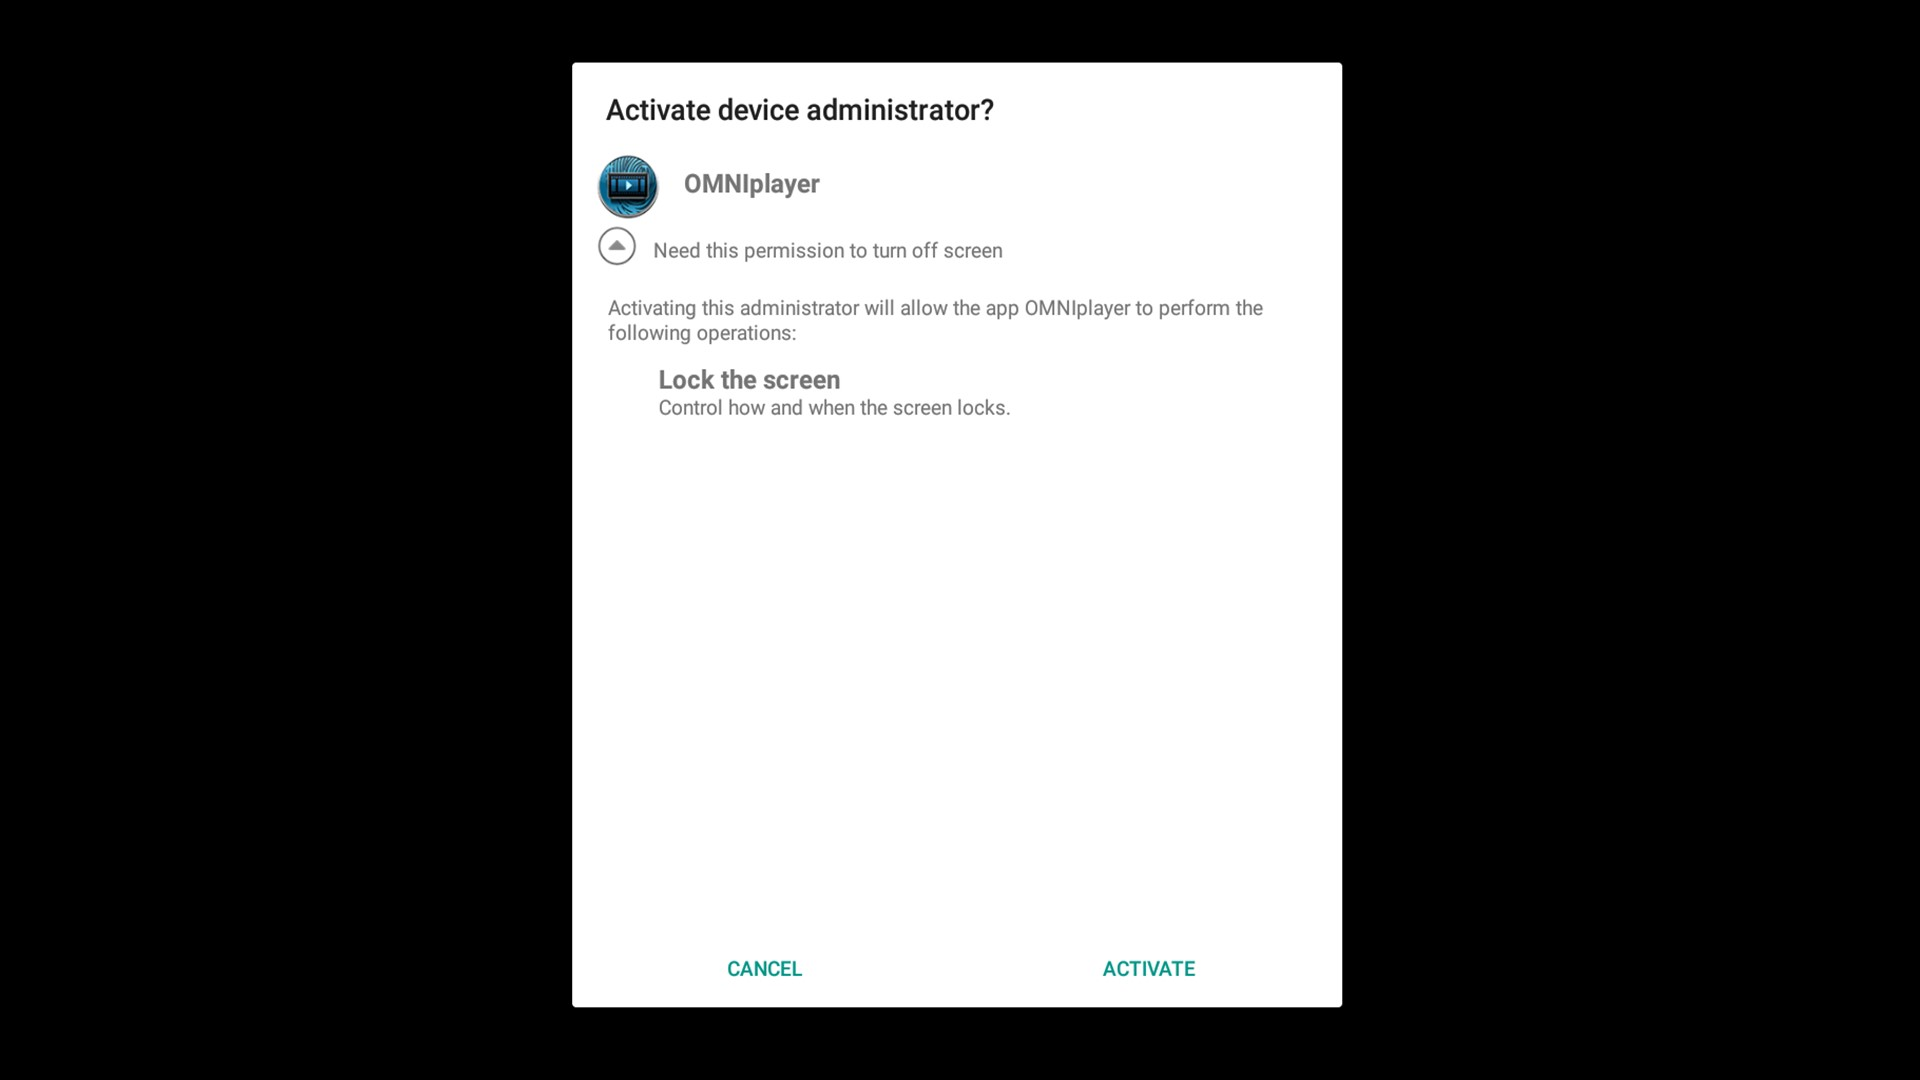 Databeat OMNIplay3 Activate Device Administrator